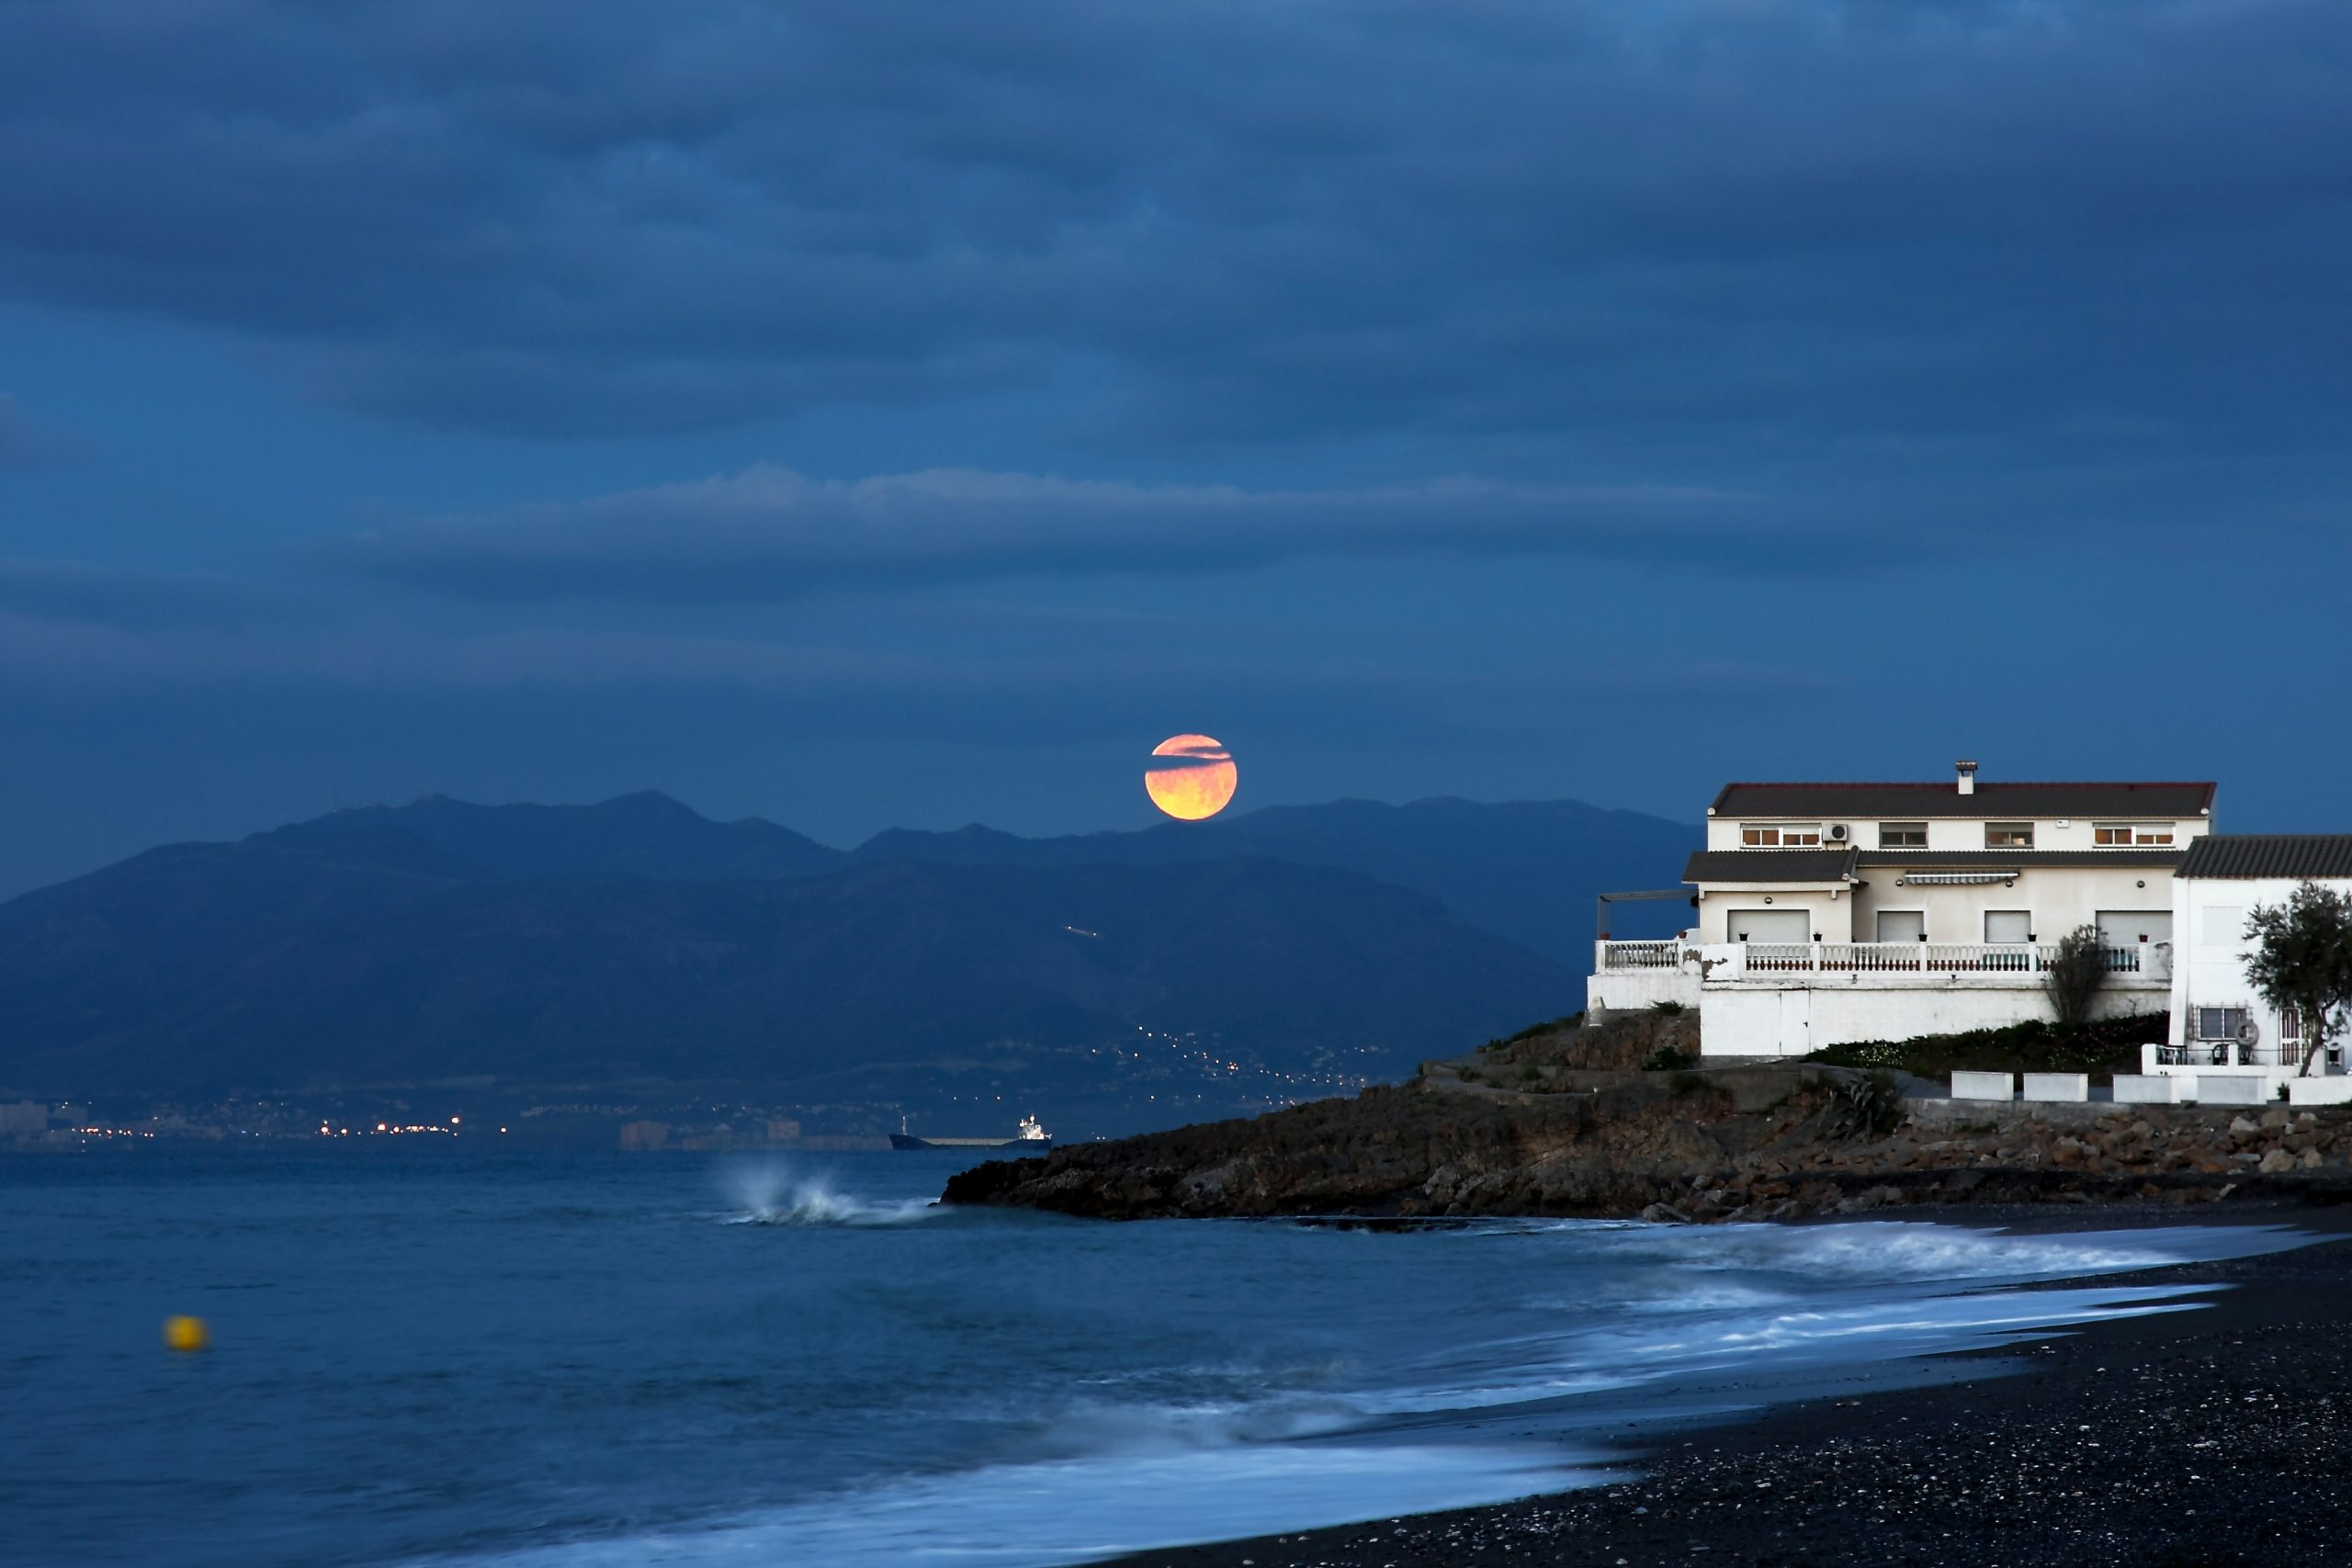 An image of a shoreside house in Spain